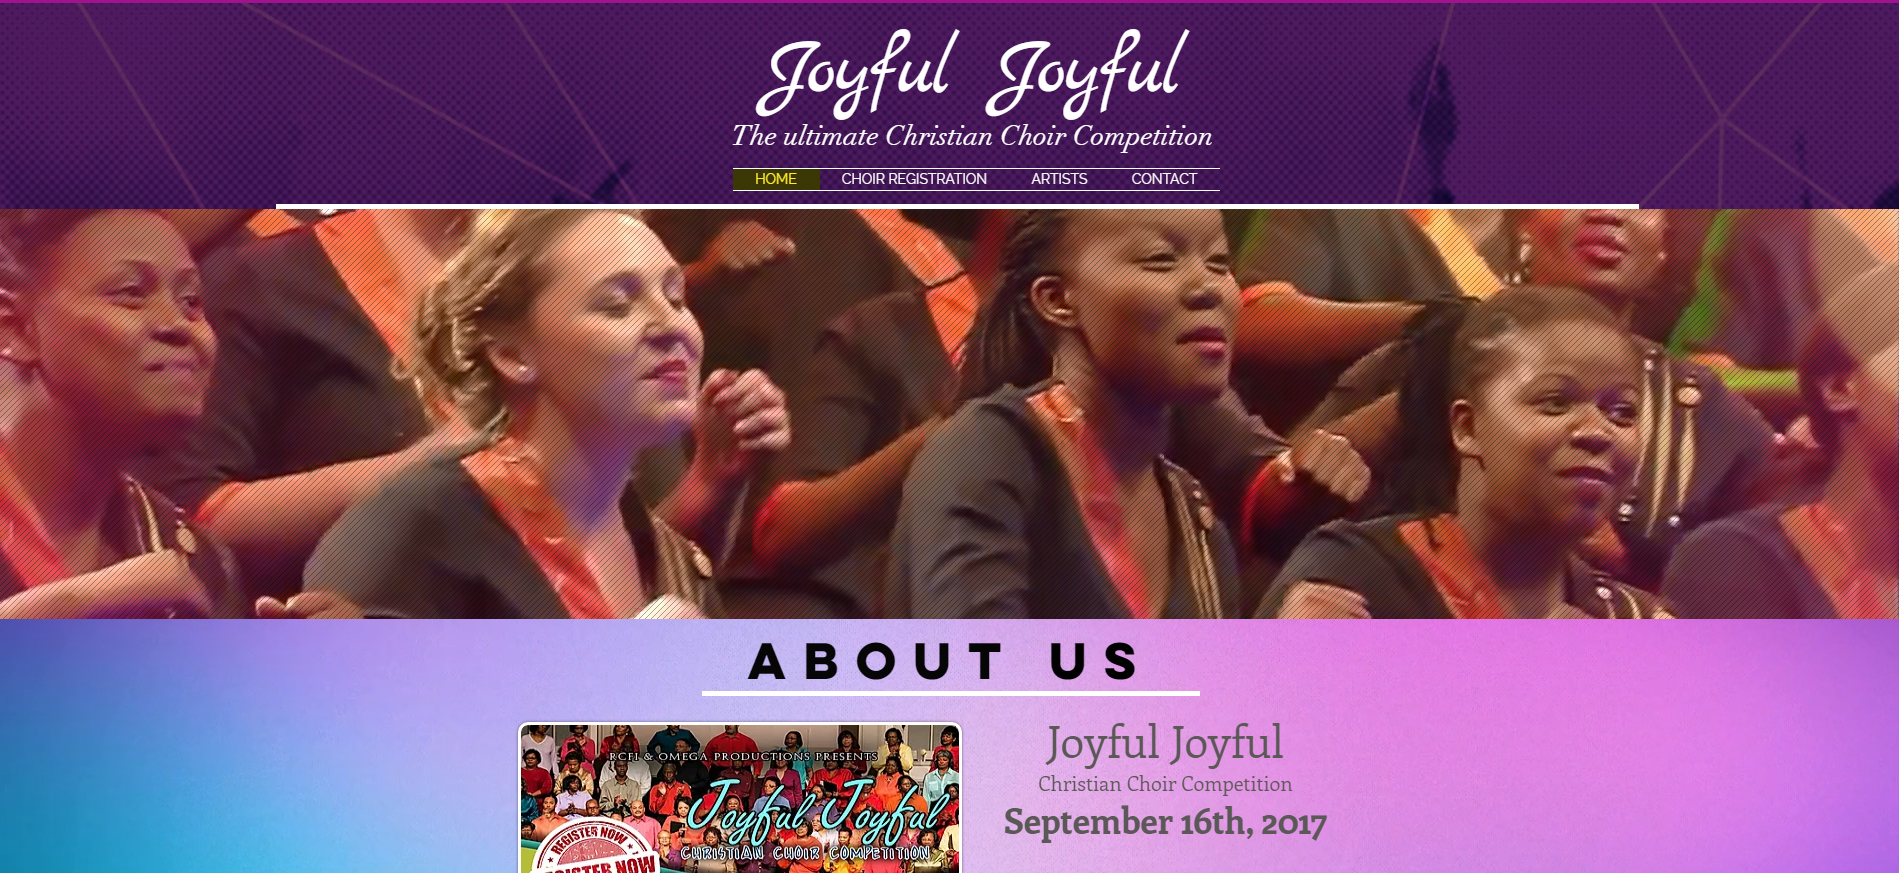 singingchoirgroup-christianchoir-toronto-brampton-thewebmiracle-joyfuljoyful-ontario-canada-websitemanagement-developer-webdesigner